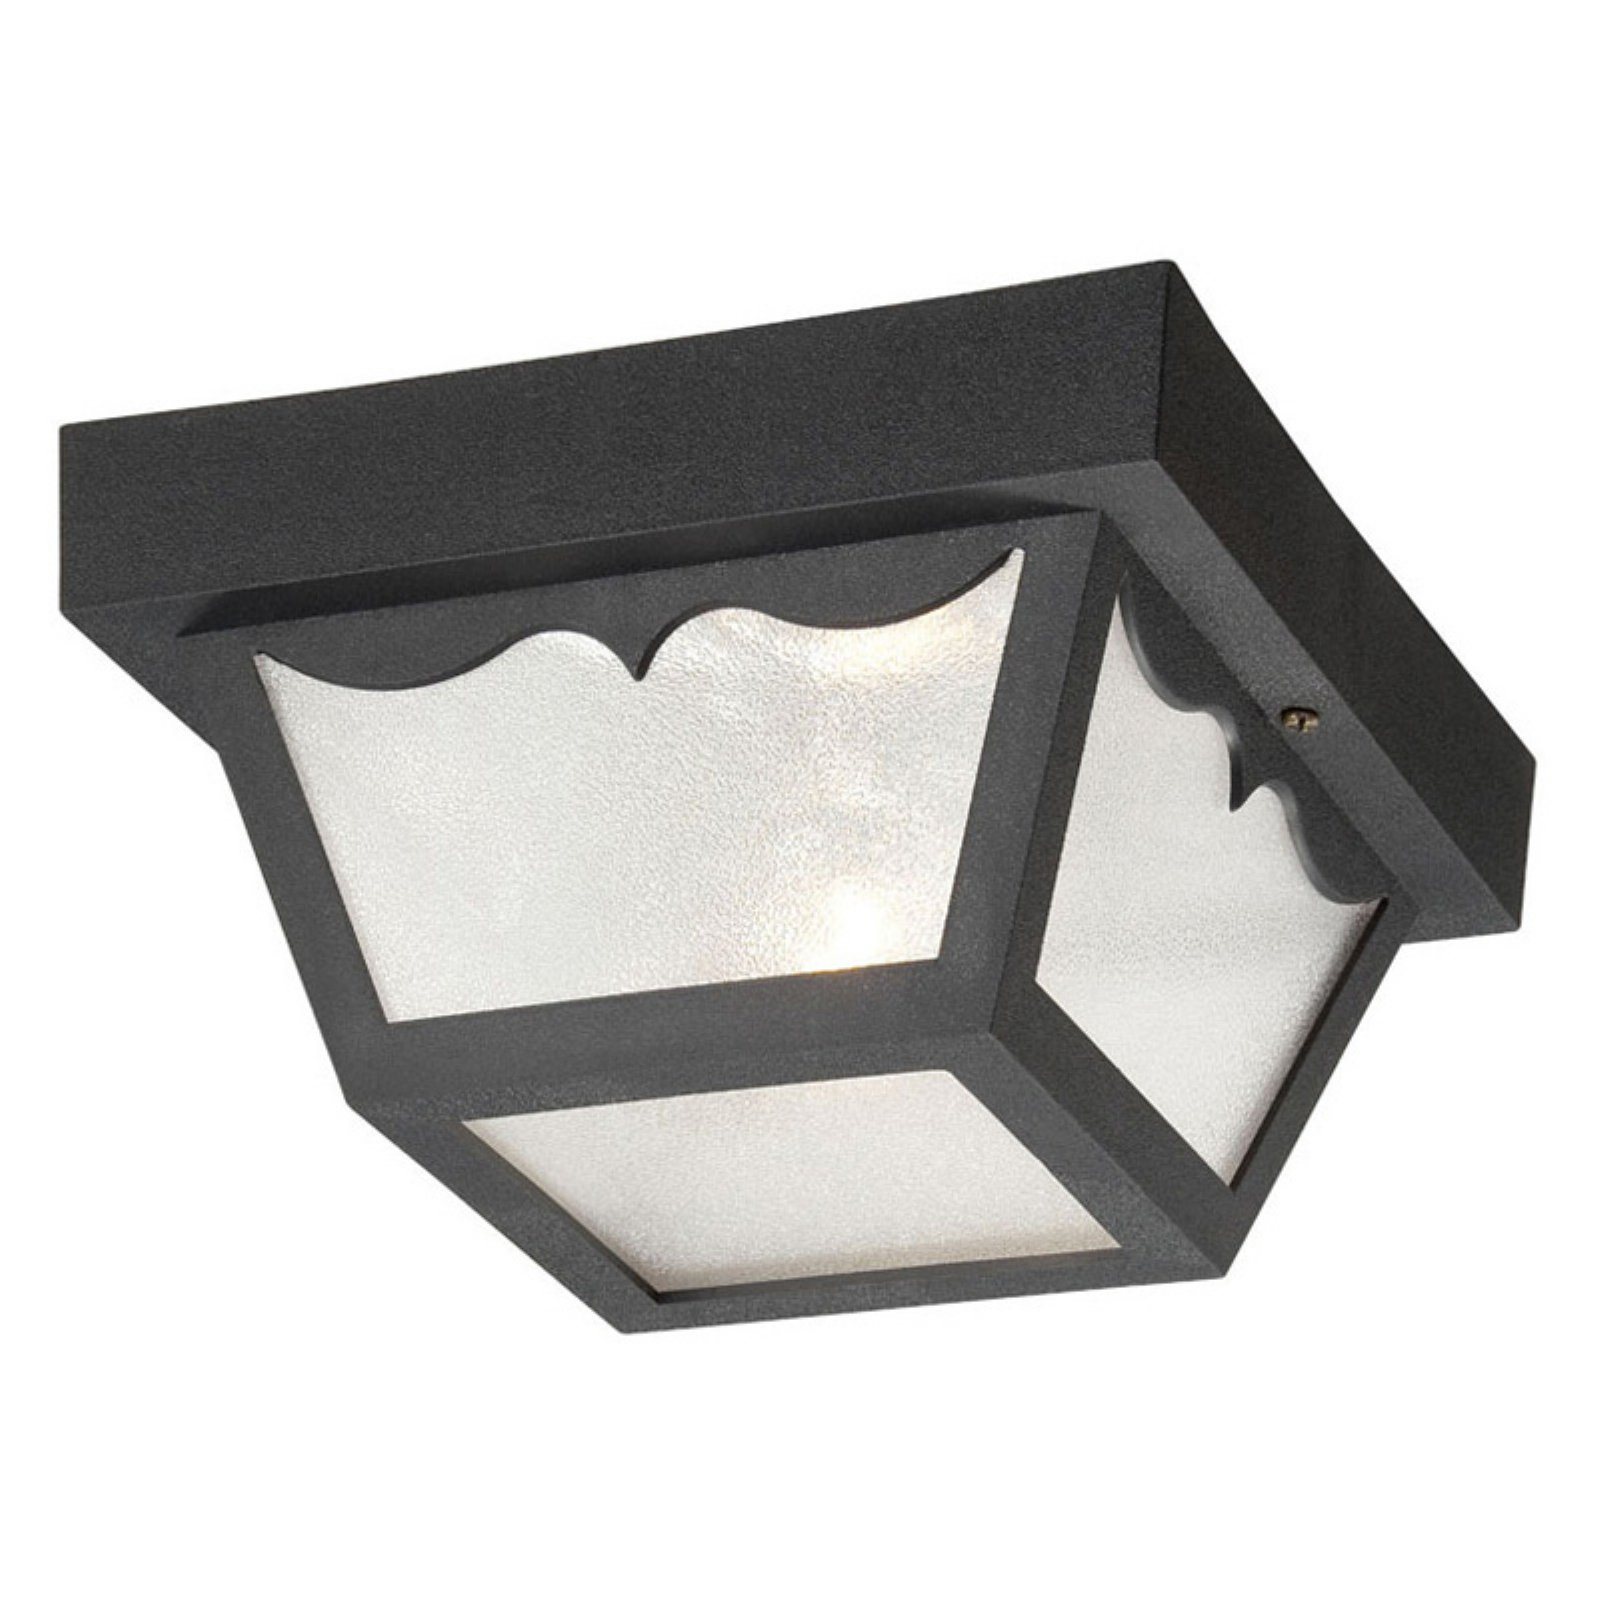 Acclaim Lighting Builders Choice 1 Light Outdoor Ceiling Mount Light Fixture by Acclaim Lighting